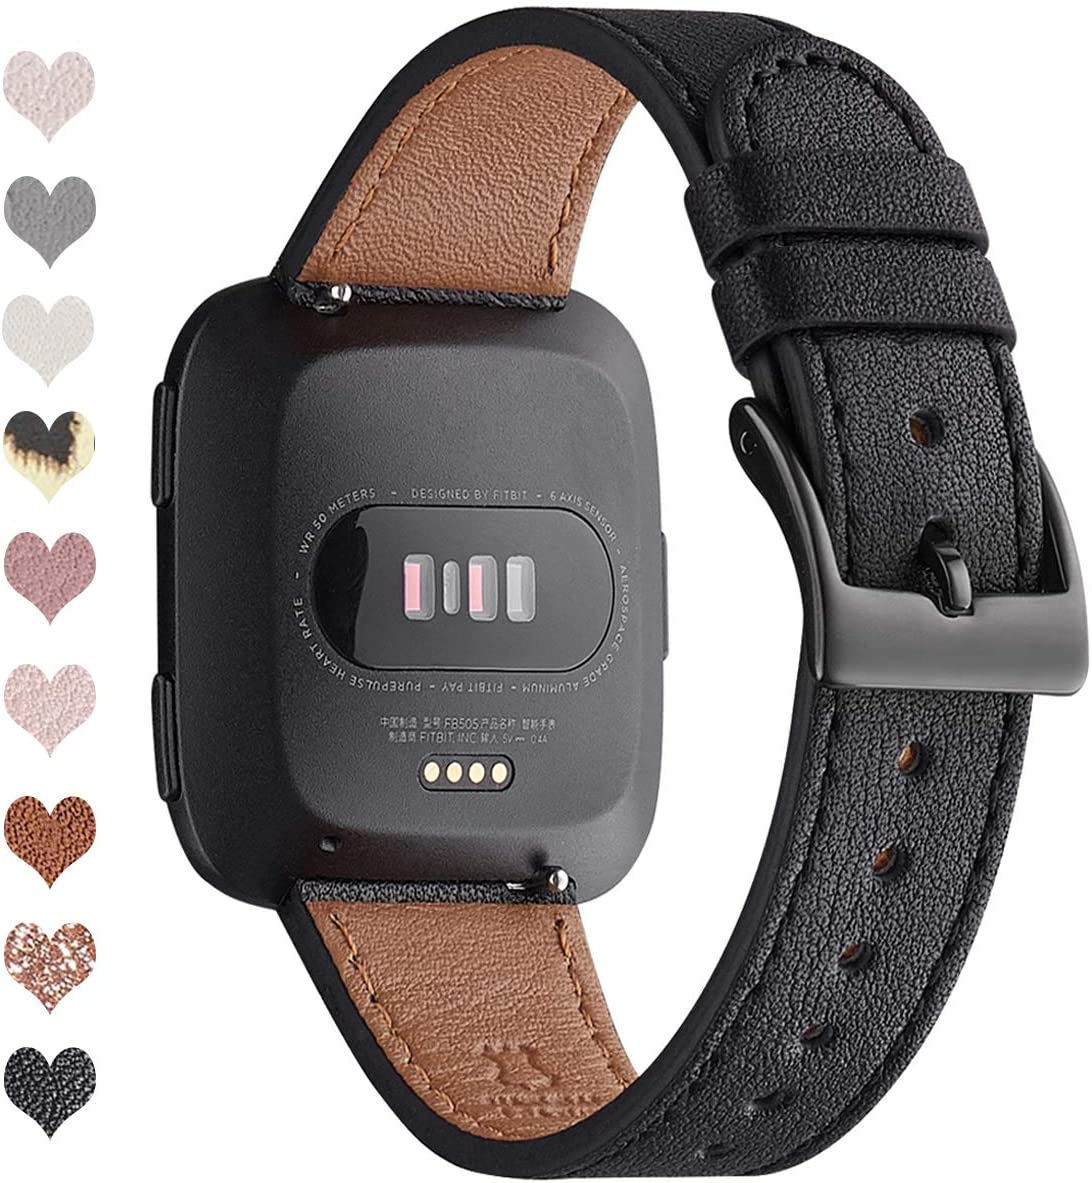 OMIU Bands Compatible with Fitbit Versa/Versa 2/Versa Lite/Versa SE for Women and Men, Classic Soft Leather Strap Replacement Wristband for Fitbit Versa Smart Fitness Watch (Black/Black)